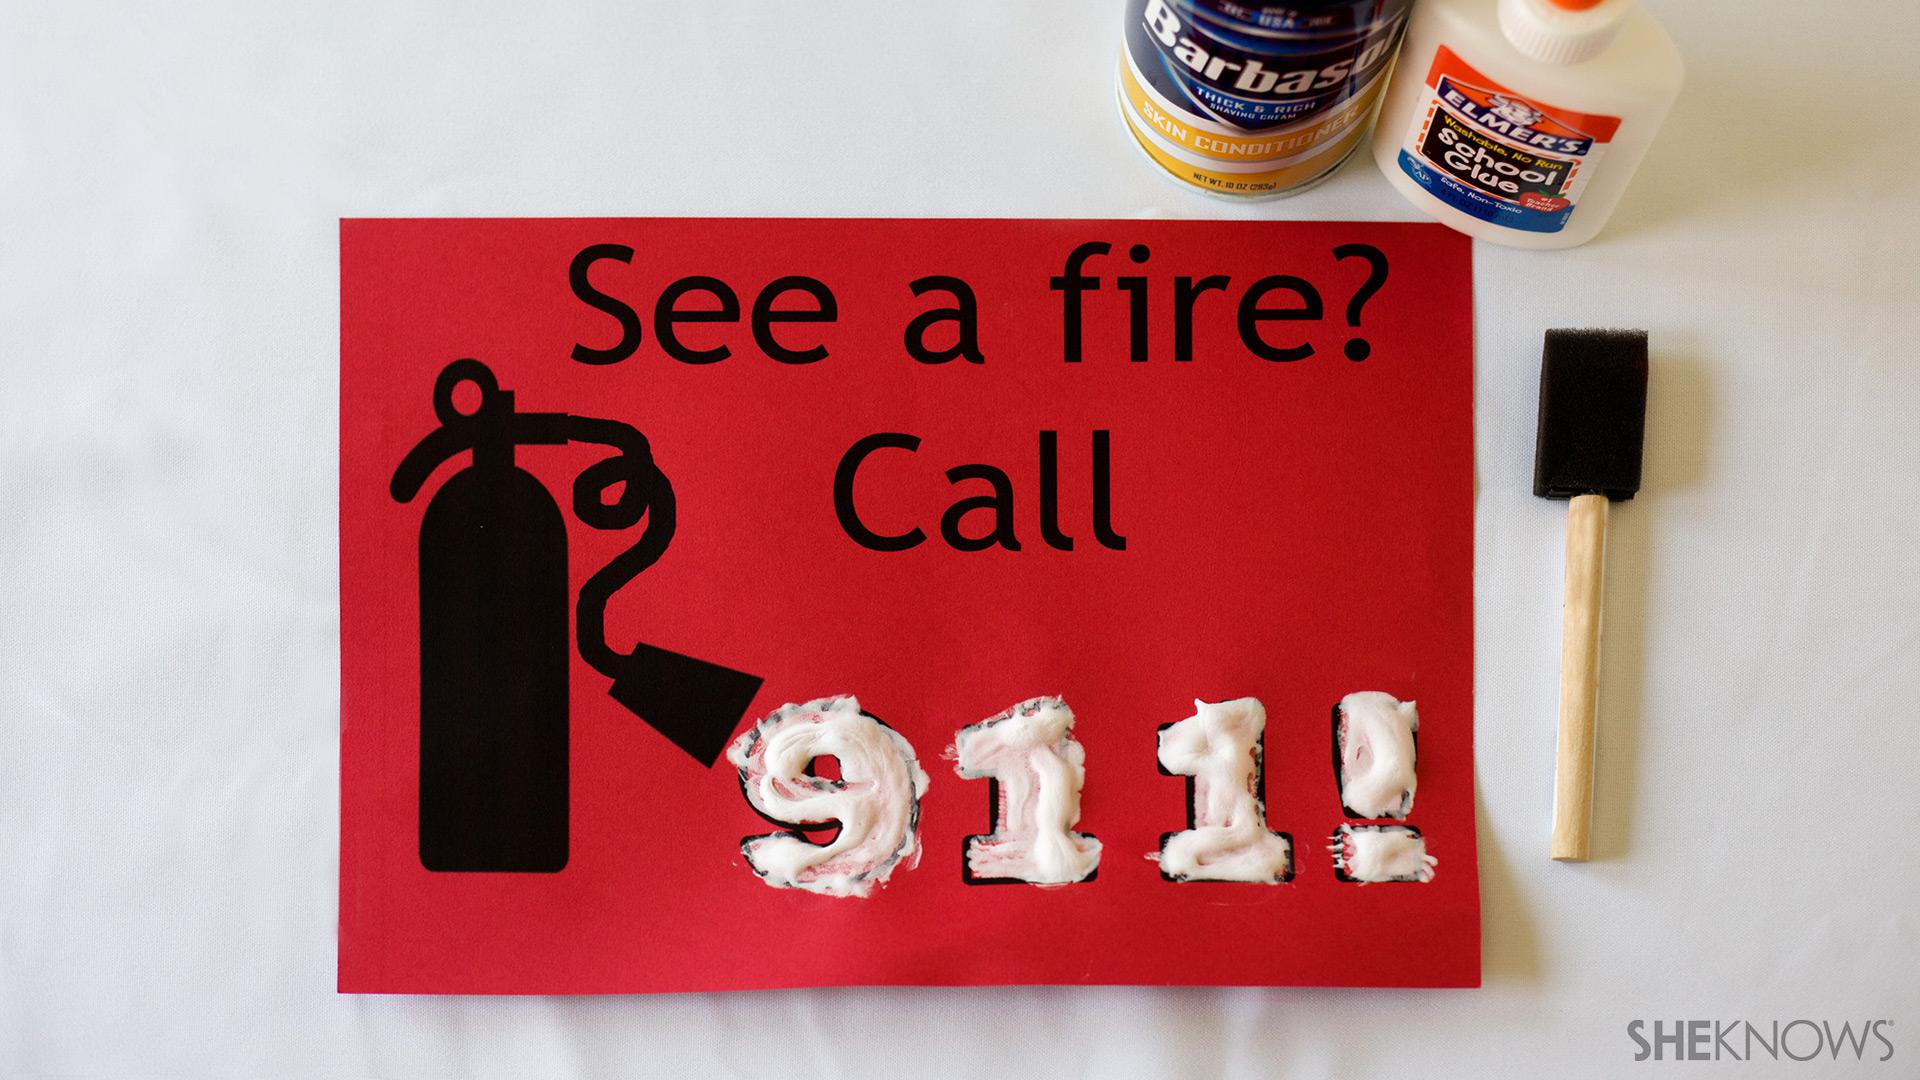 Fire Safety Crafts For Kids Sheknows